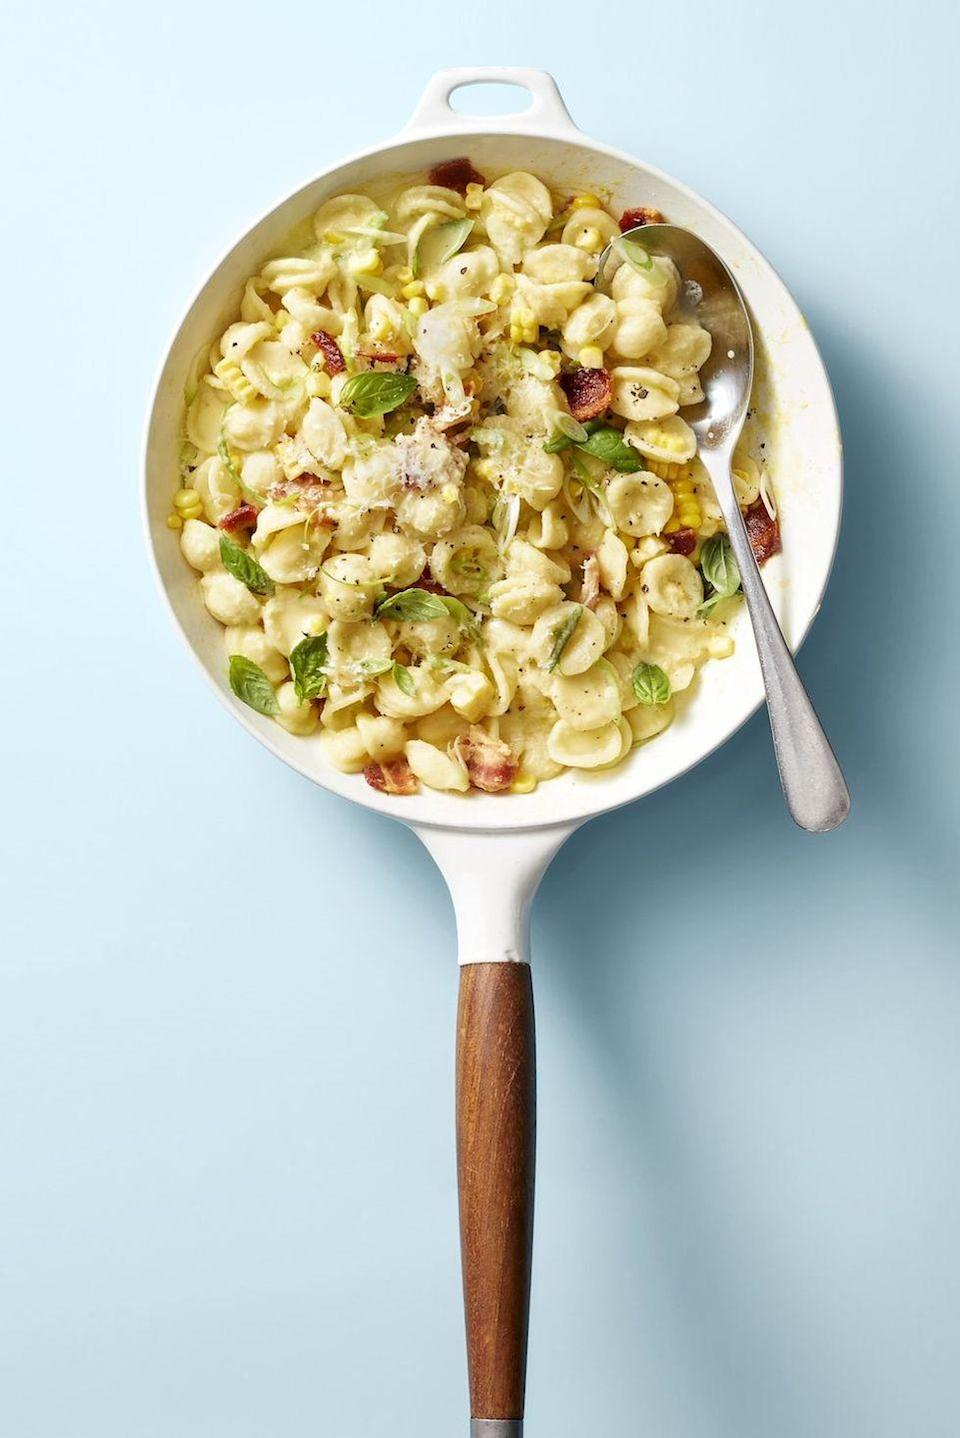 """<p>Fresh corn adds sweetness (and some veggies) to this tasty <a href=""""https://www.goodhousekeeping.com/food-recipes/easy/g2341/pasta-recipes-with-5-ingredients/"""" rel=""""nofollow noopener"""" target=""""_blank"""" data-ylk=""""slk:family-friendly pasta"""" class=""""link rapid-noclick-resp"""">family-friendly pasta</a>.</p><p><em><a href=""""https://www.goodhousekeeping.com/food-recipes/easy/a28196797/creamy-corn-pasta-with-bacon-and-scallions-recipe/"""" rel=""""nofollow noopener"""" target=""""_blank"""" data-ylk=""""slk:Get the recipe for Creamy Corn Pasta with Bacon and Scallions »"""" class=""""link rapid-noclick-resp"""">Get the recipe for Creamy Corn Pasta with Bacon and Scallions »</a></em></p>"""